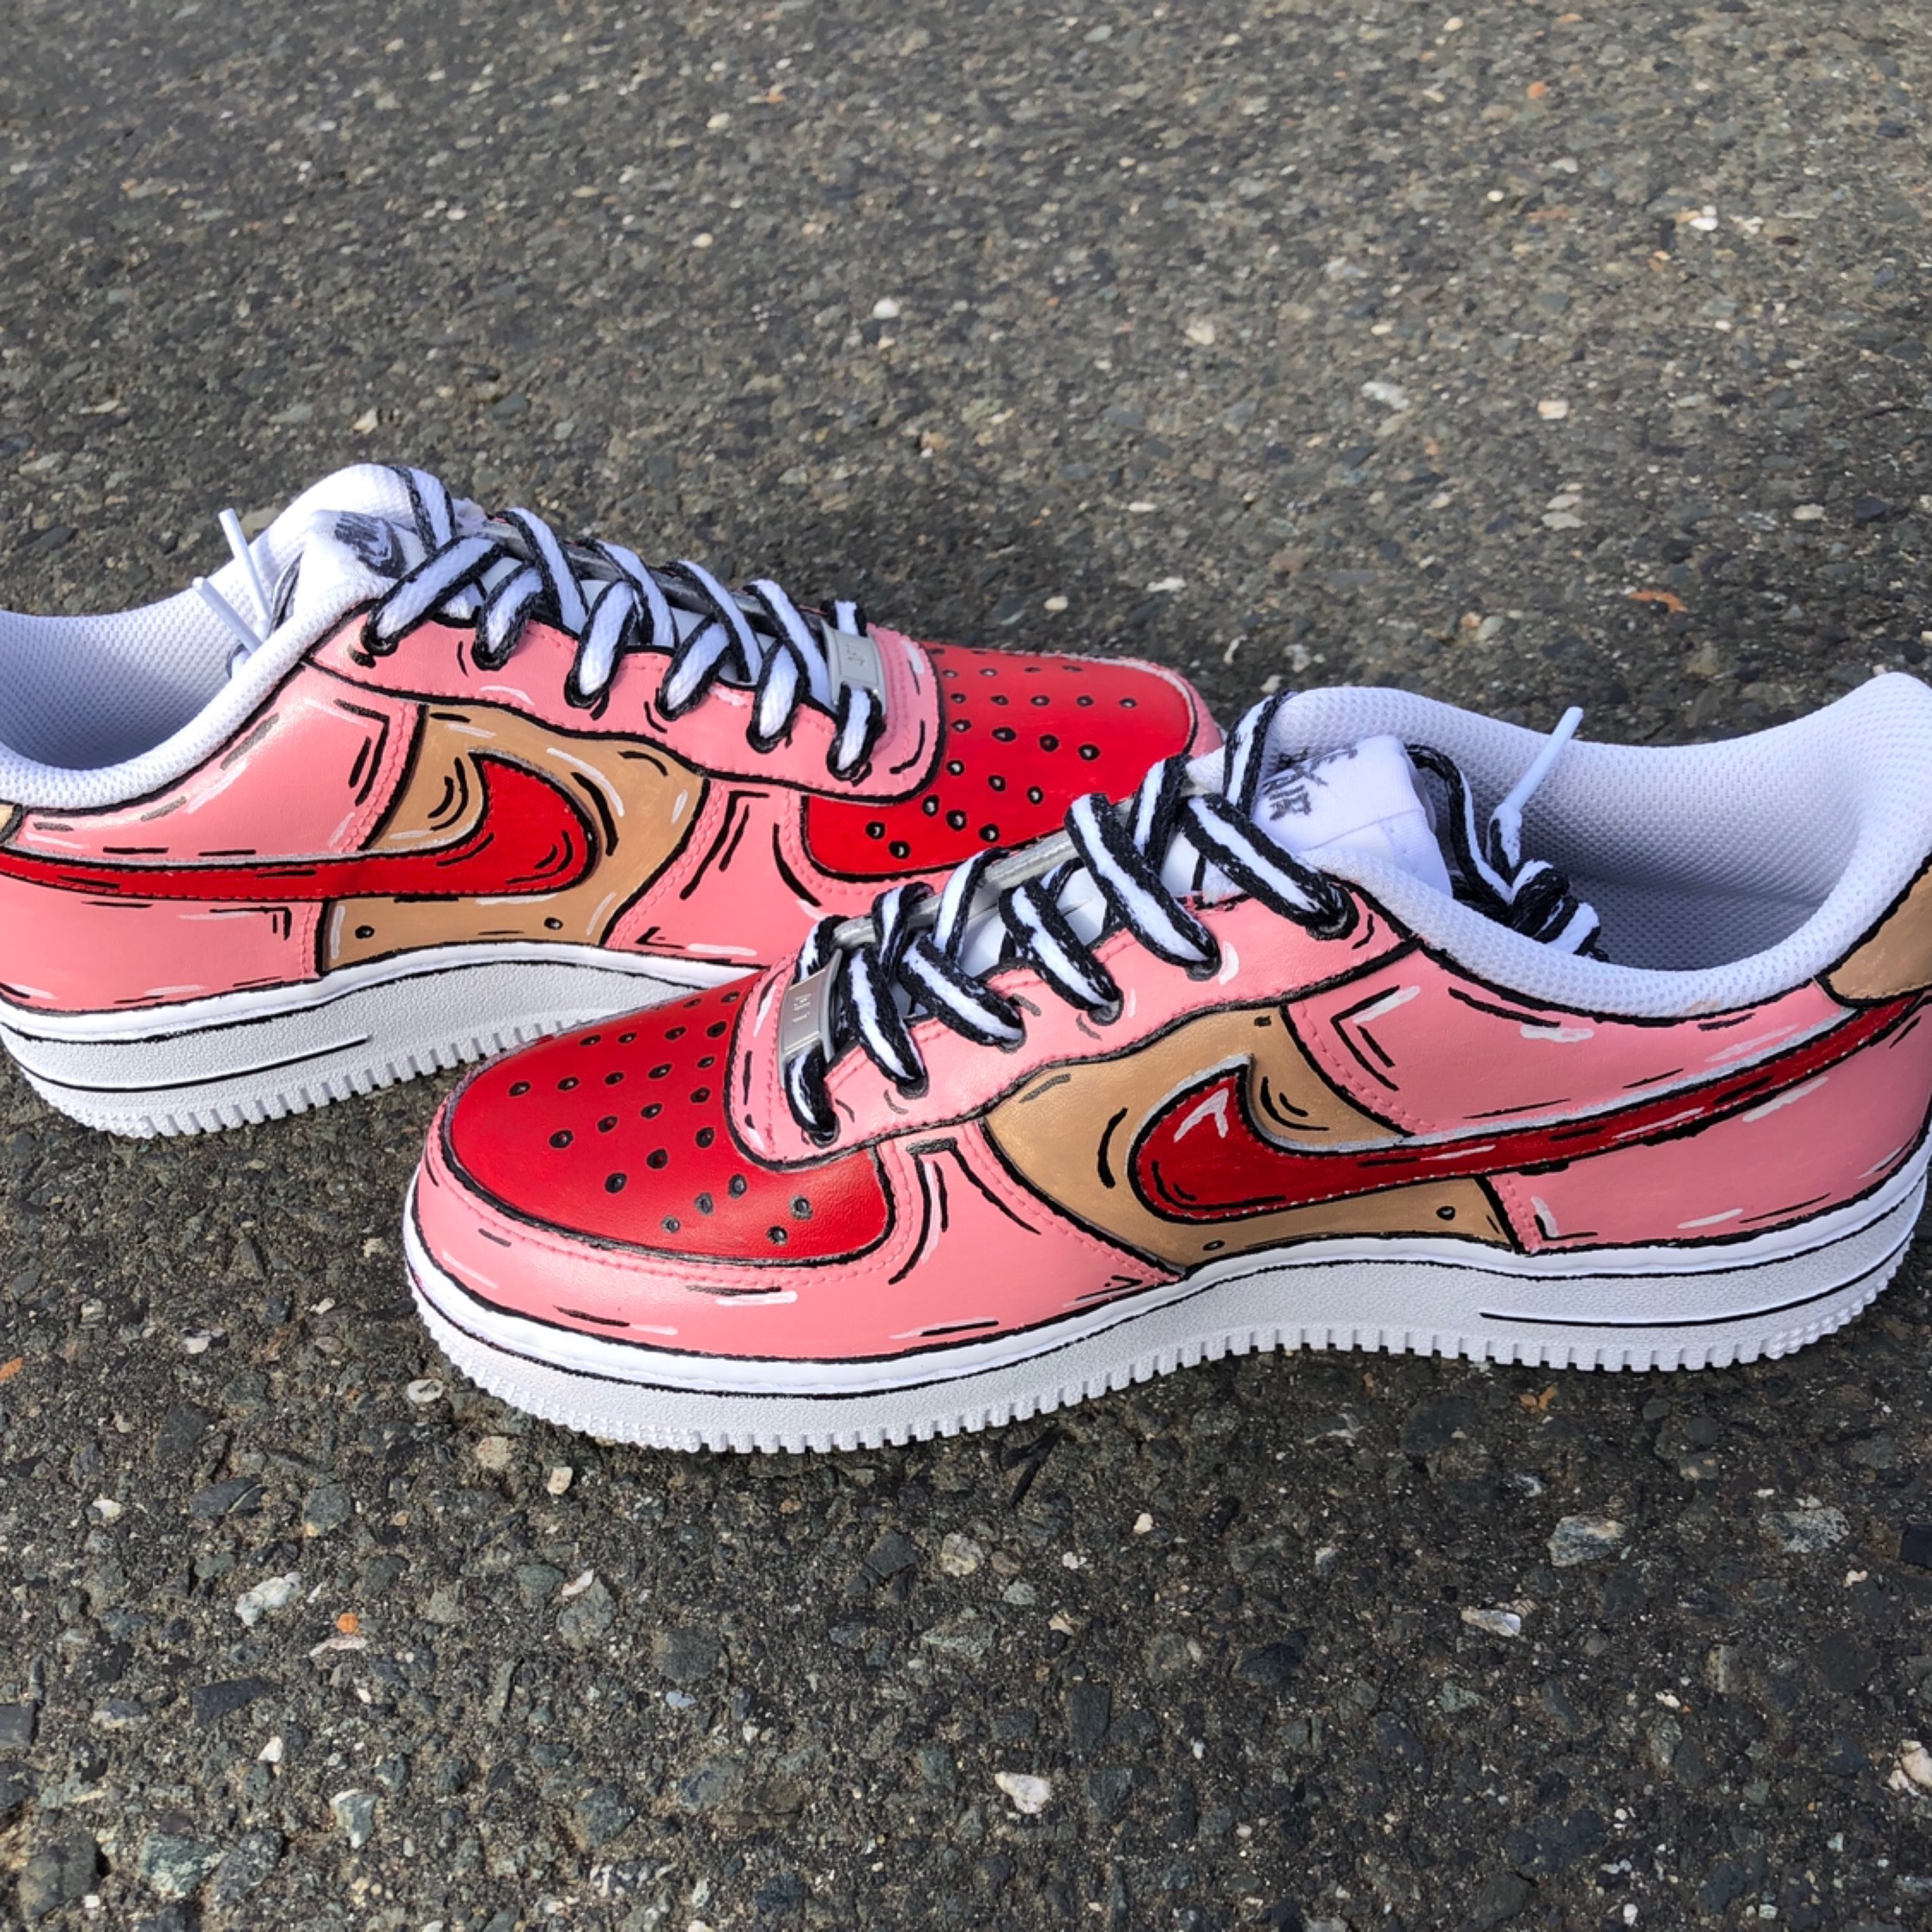 Custom Cartoon Nike Air Force 1 Neu Damenschuh 38